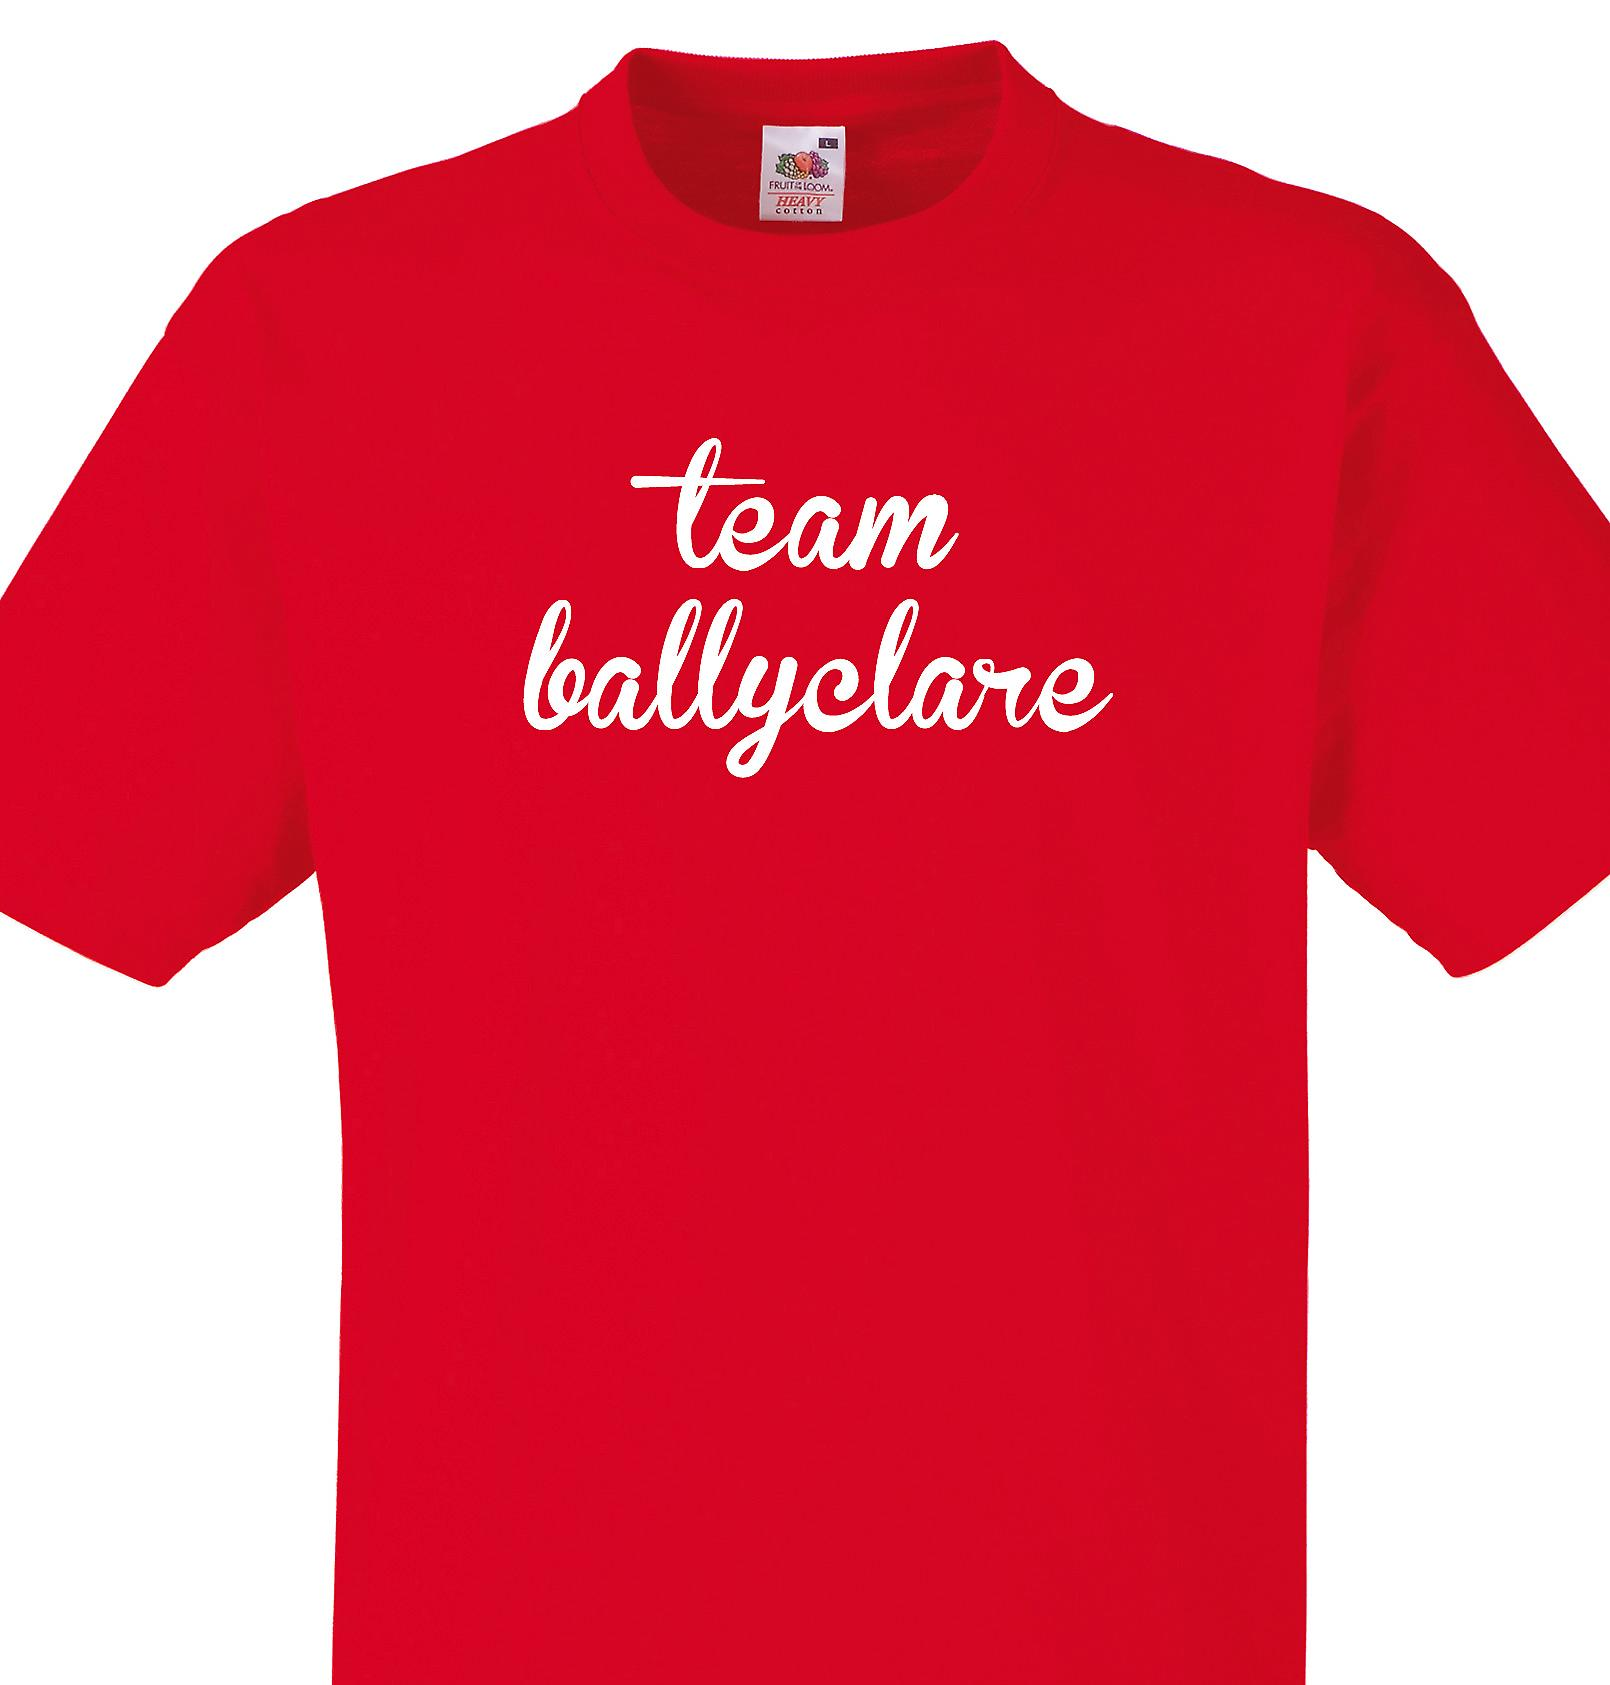 Team Ballyclare Red T shirt